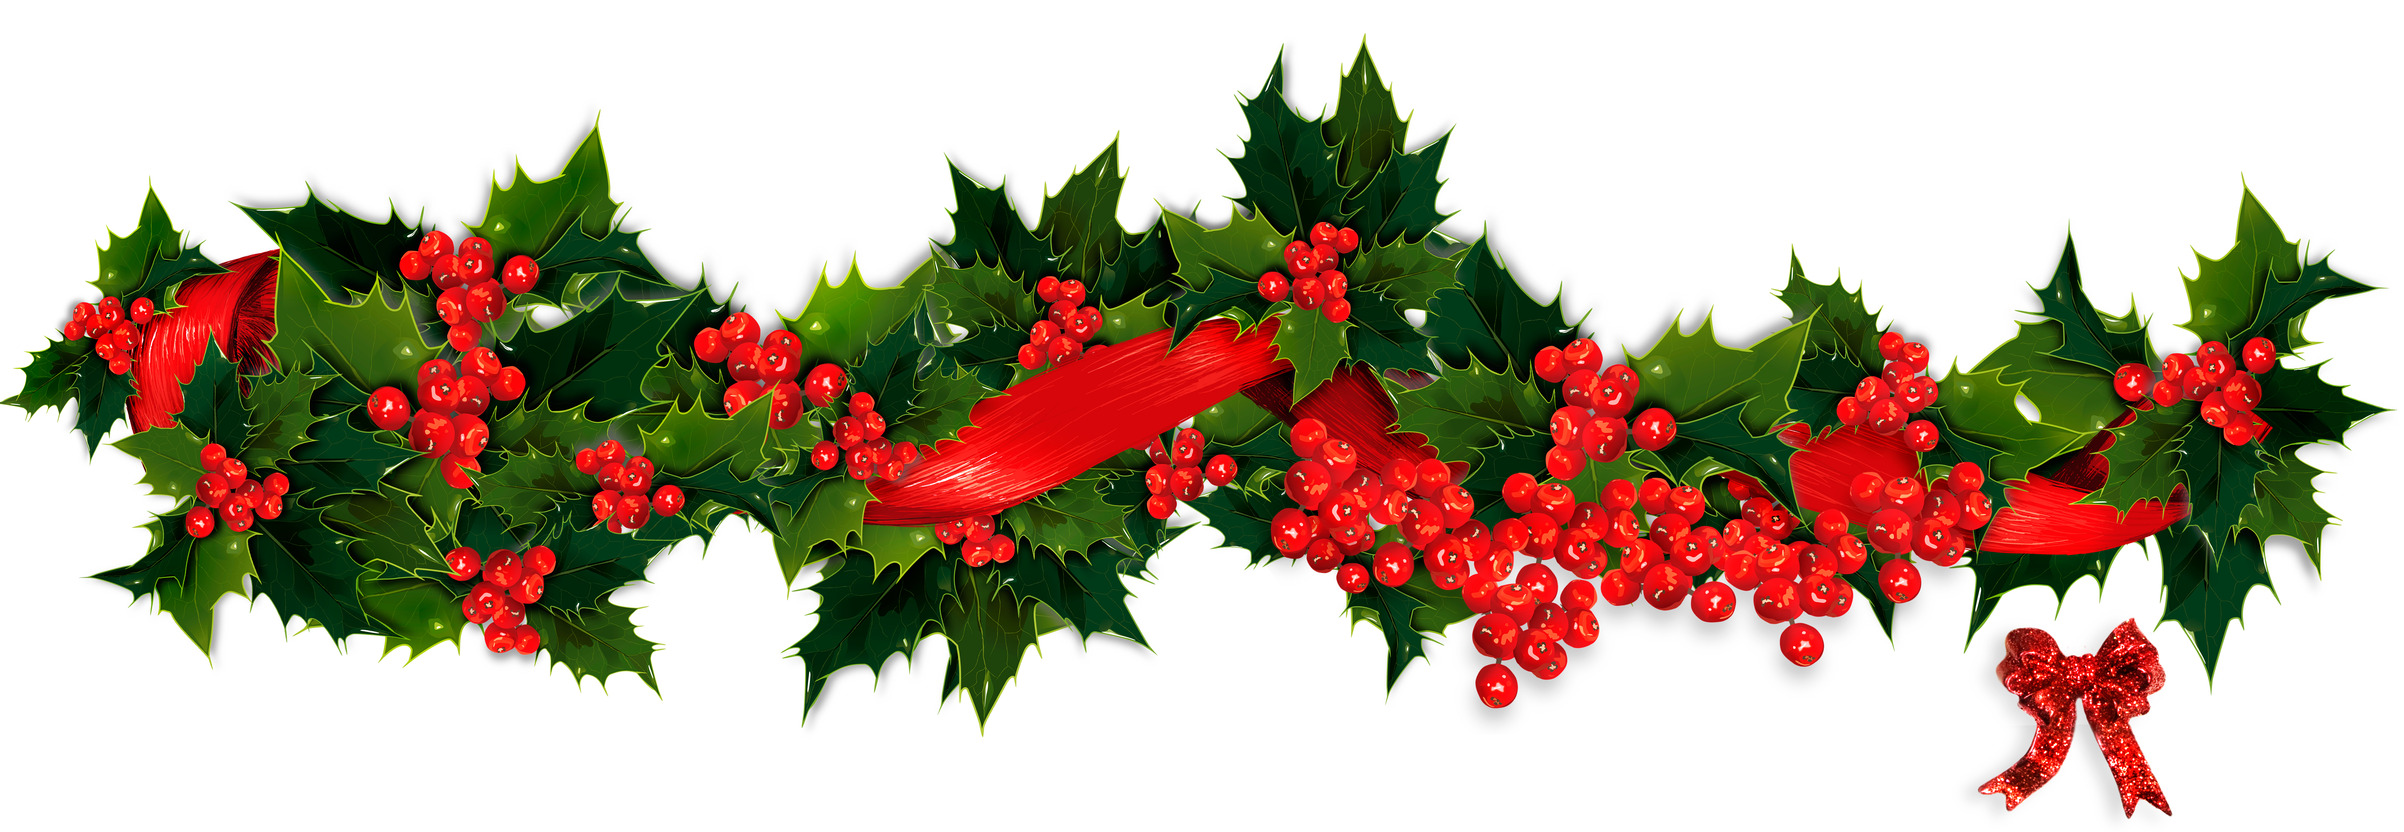 Christmas Wreaths Clipart Free Download Best Christmas Wreaths